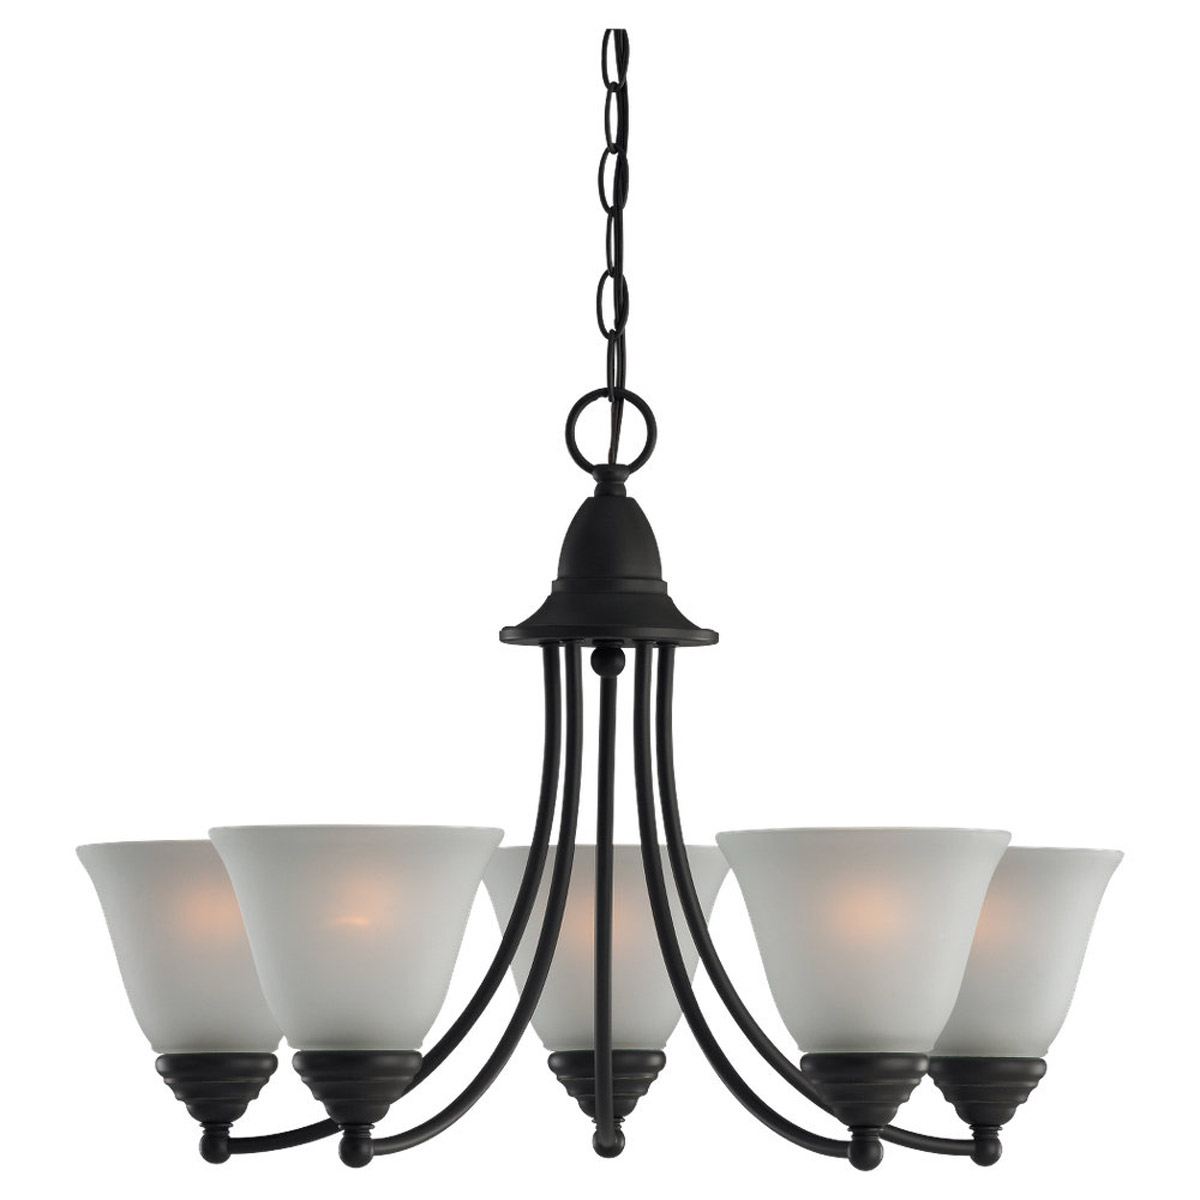 Sea Gull Lighting Albany 5 Light Chandelier in Heirloom Bronze 31576-782